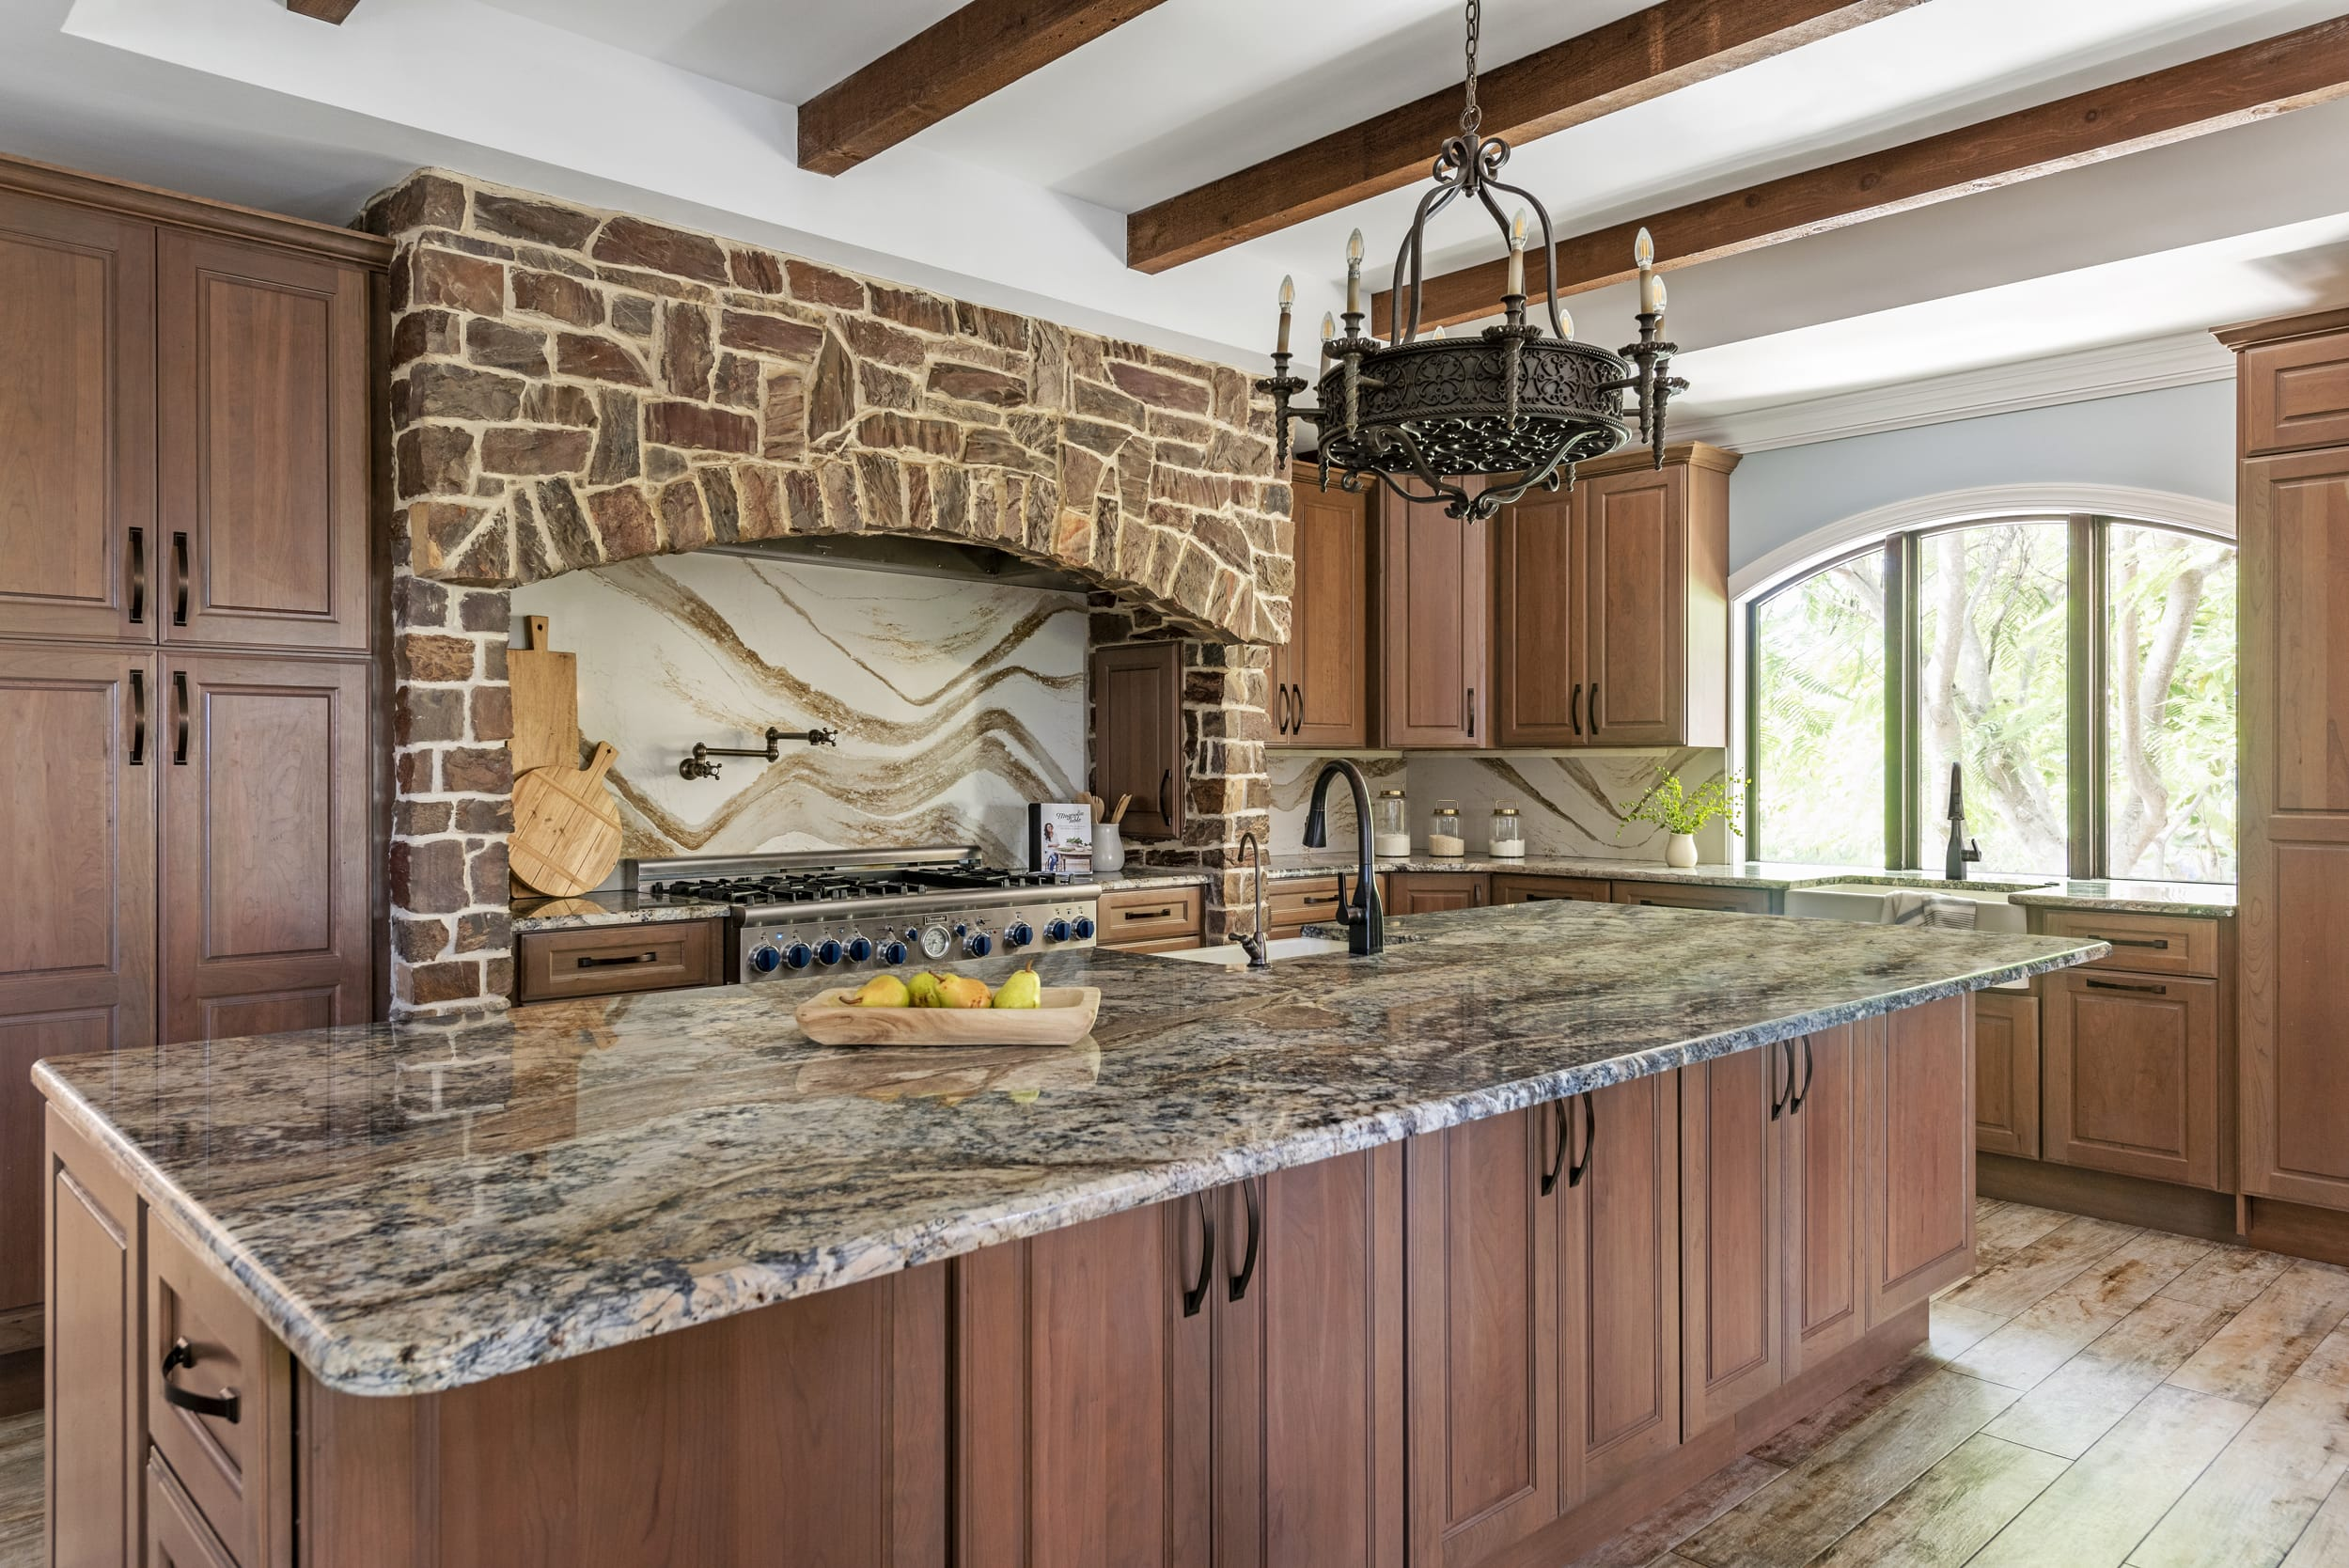 Rustic Kitchen Exposed Brick Wood Beams Stone Counter Top